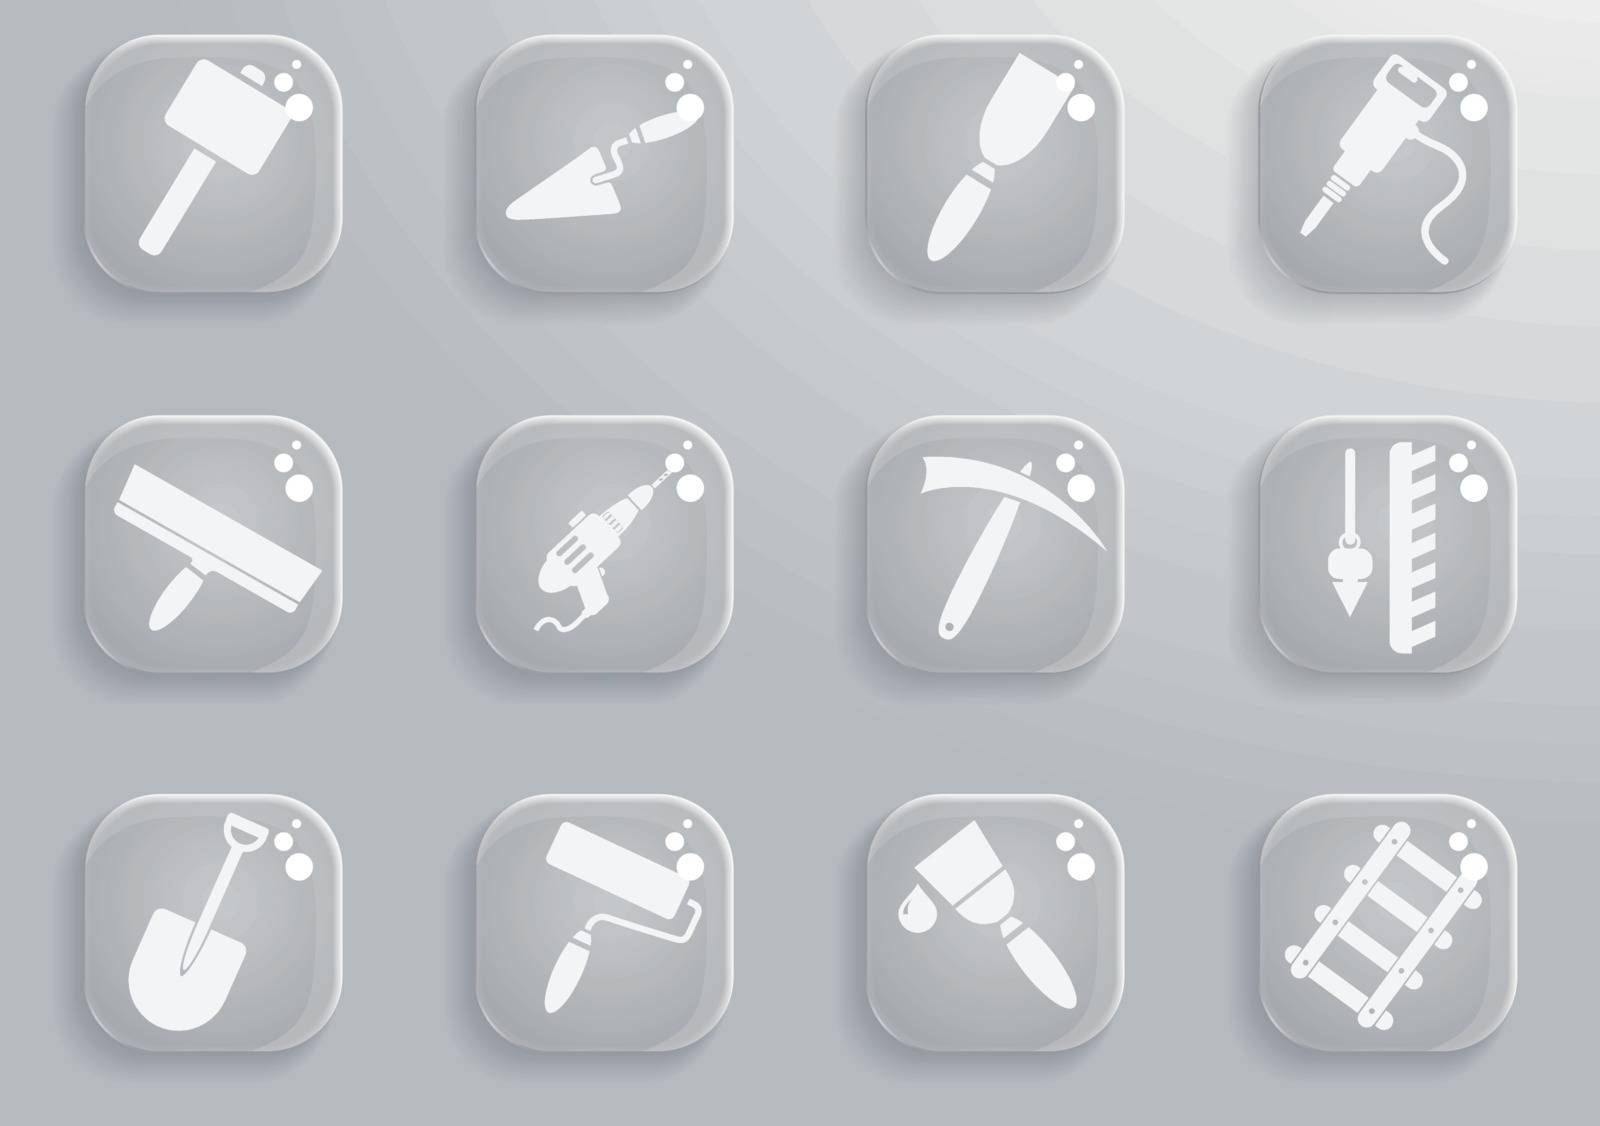 building equipment simply symbol for web icons and user interface